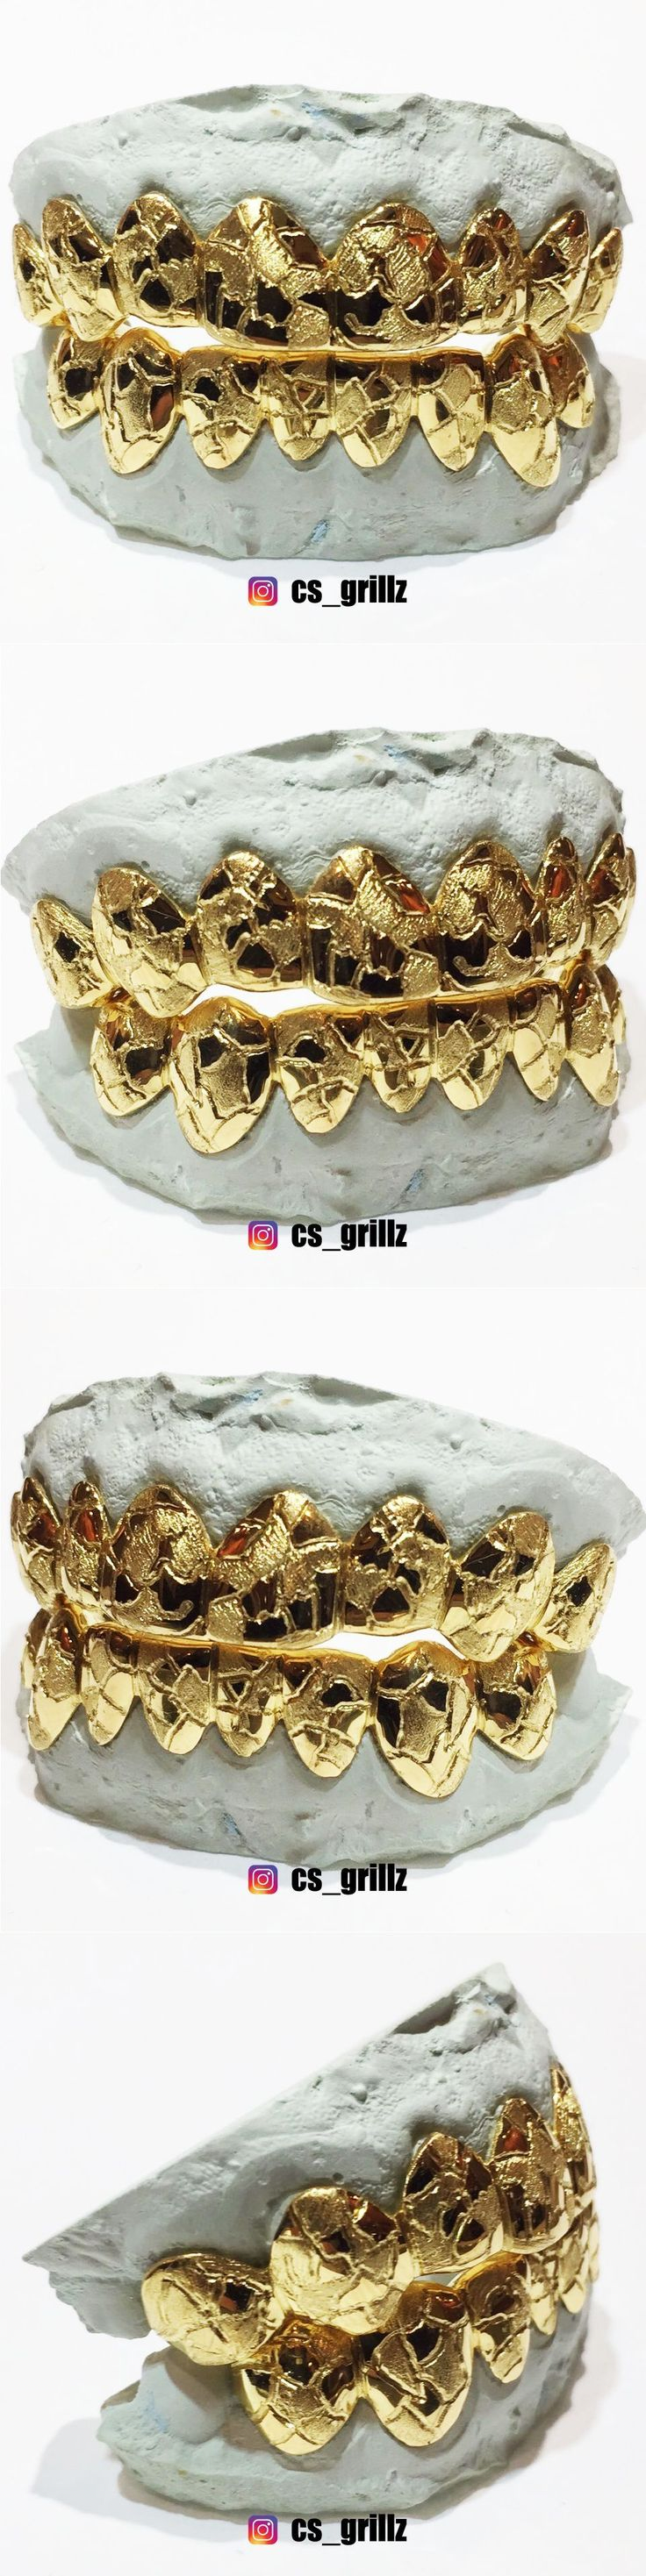 Grillz Dental Grills 152808: Sterling Silver W/ 18K Yellow Gold Plated Nugget Cut Custom Fit Real Grillz BUY IT NOW ONLY: $110.0